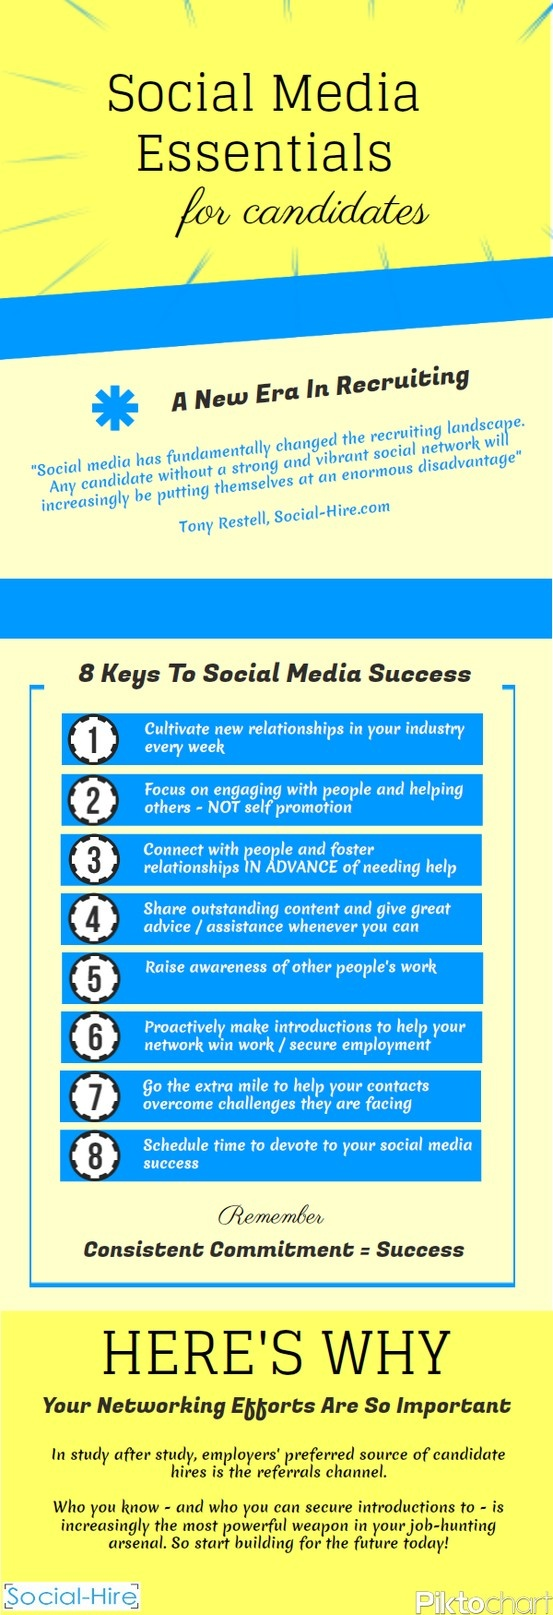 Social Media Essentials For Candidates, by Social-Hire.com.  8 Keys To Social Media Success that we believe to be so critical to the career progression of business professionals today.